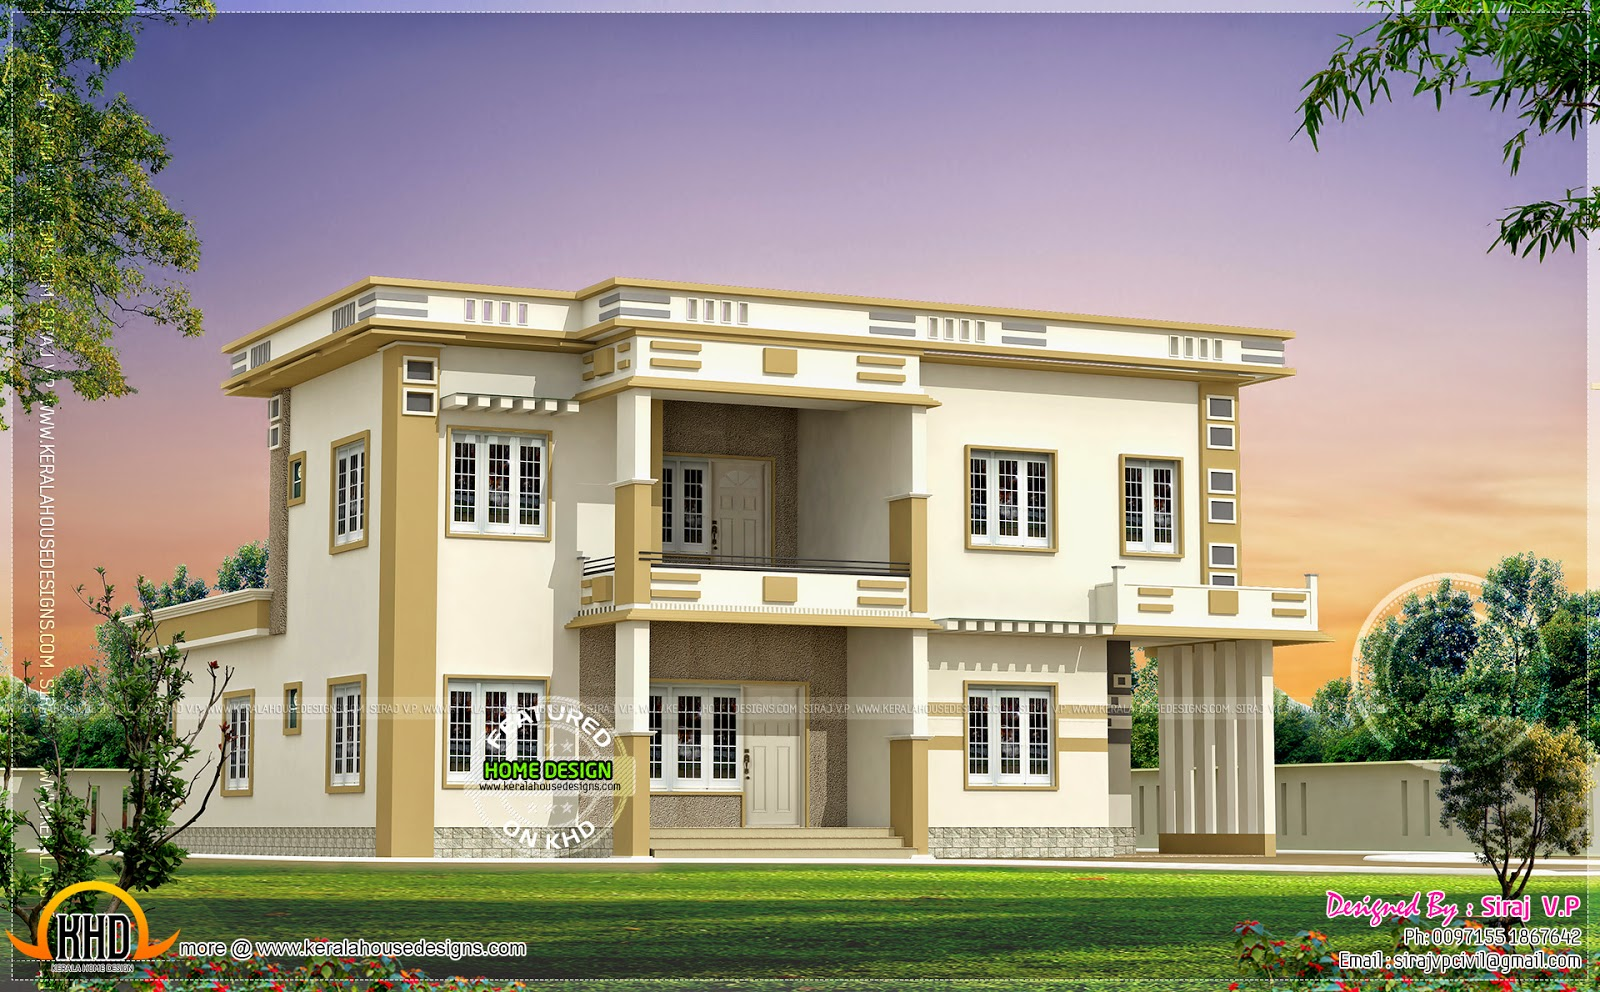 Contemporary villa in different color combinations kerala home design and floor plans - Colorful house plans ...